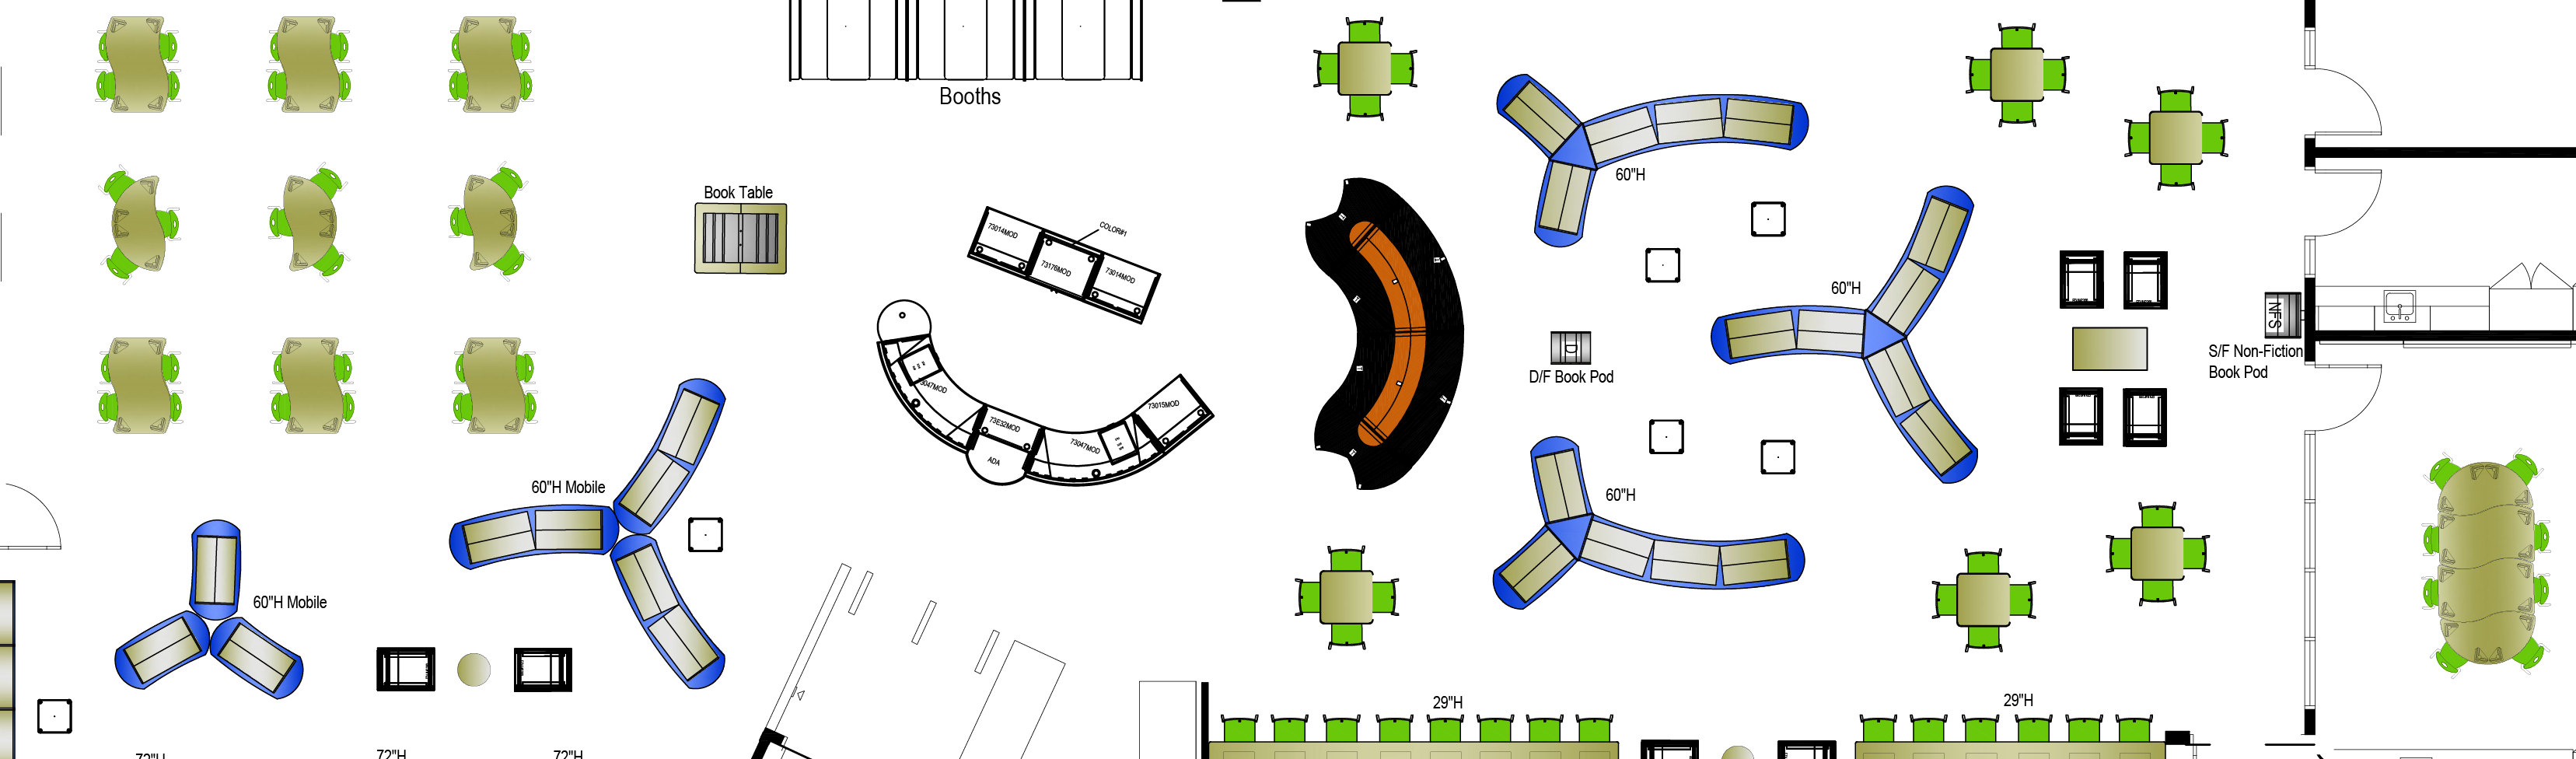 Birds-eye view 2D rendering of collaborative classroom